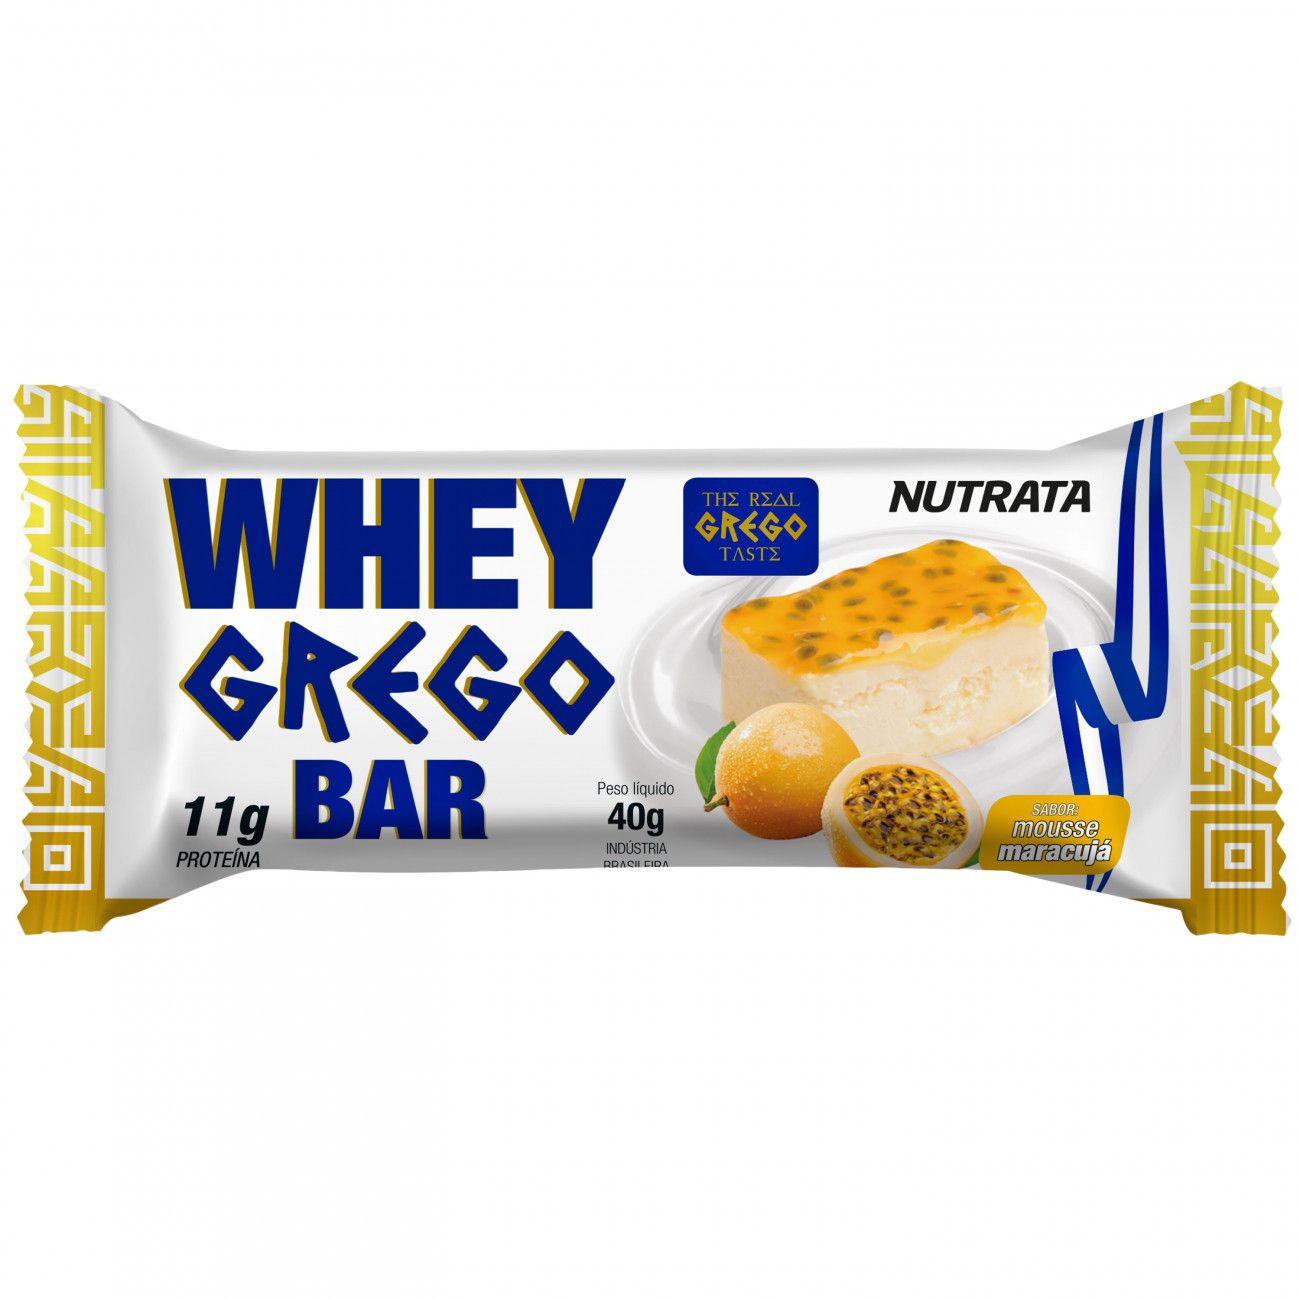 Barra Whey Grego Bar - 11g